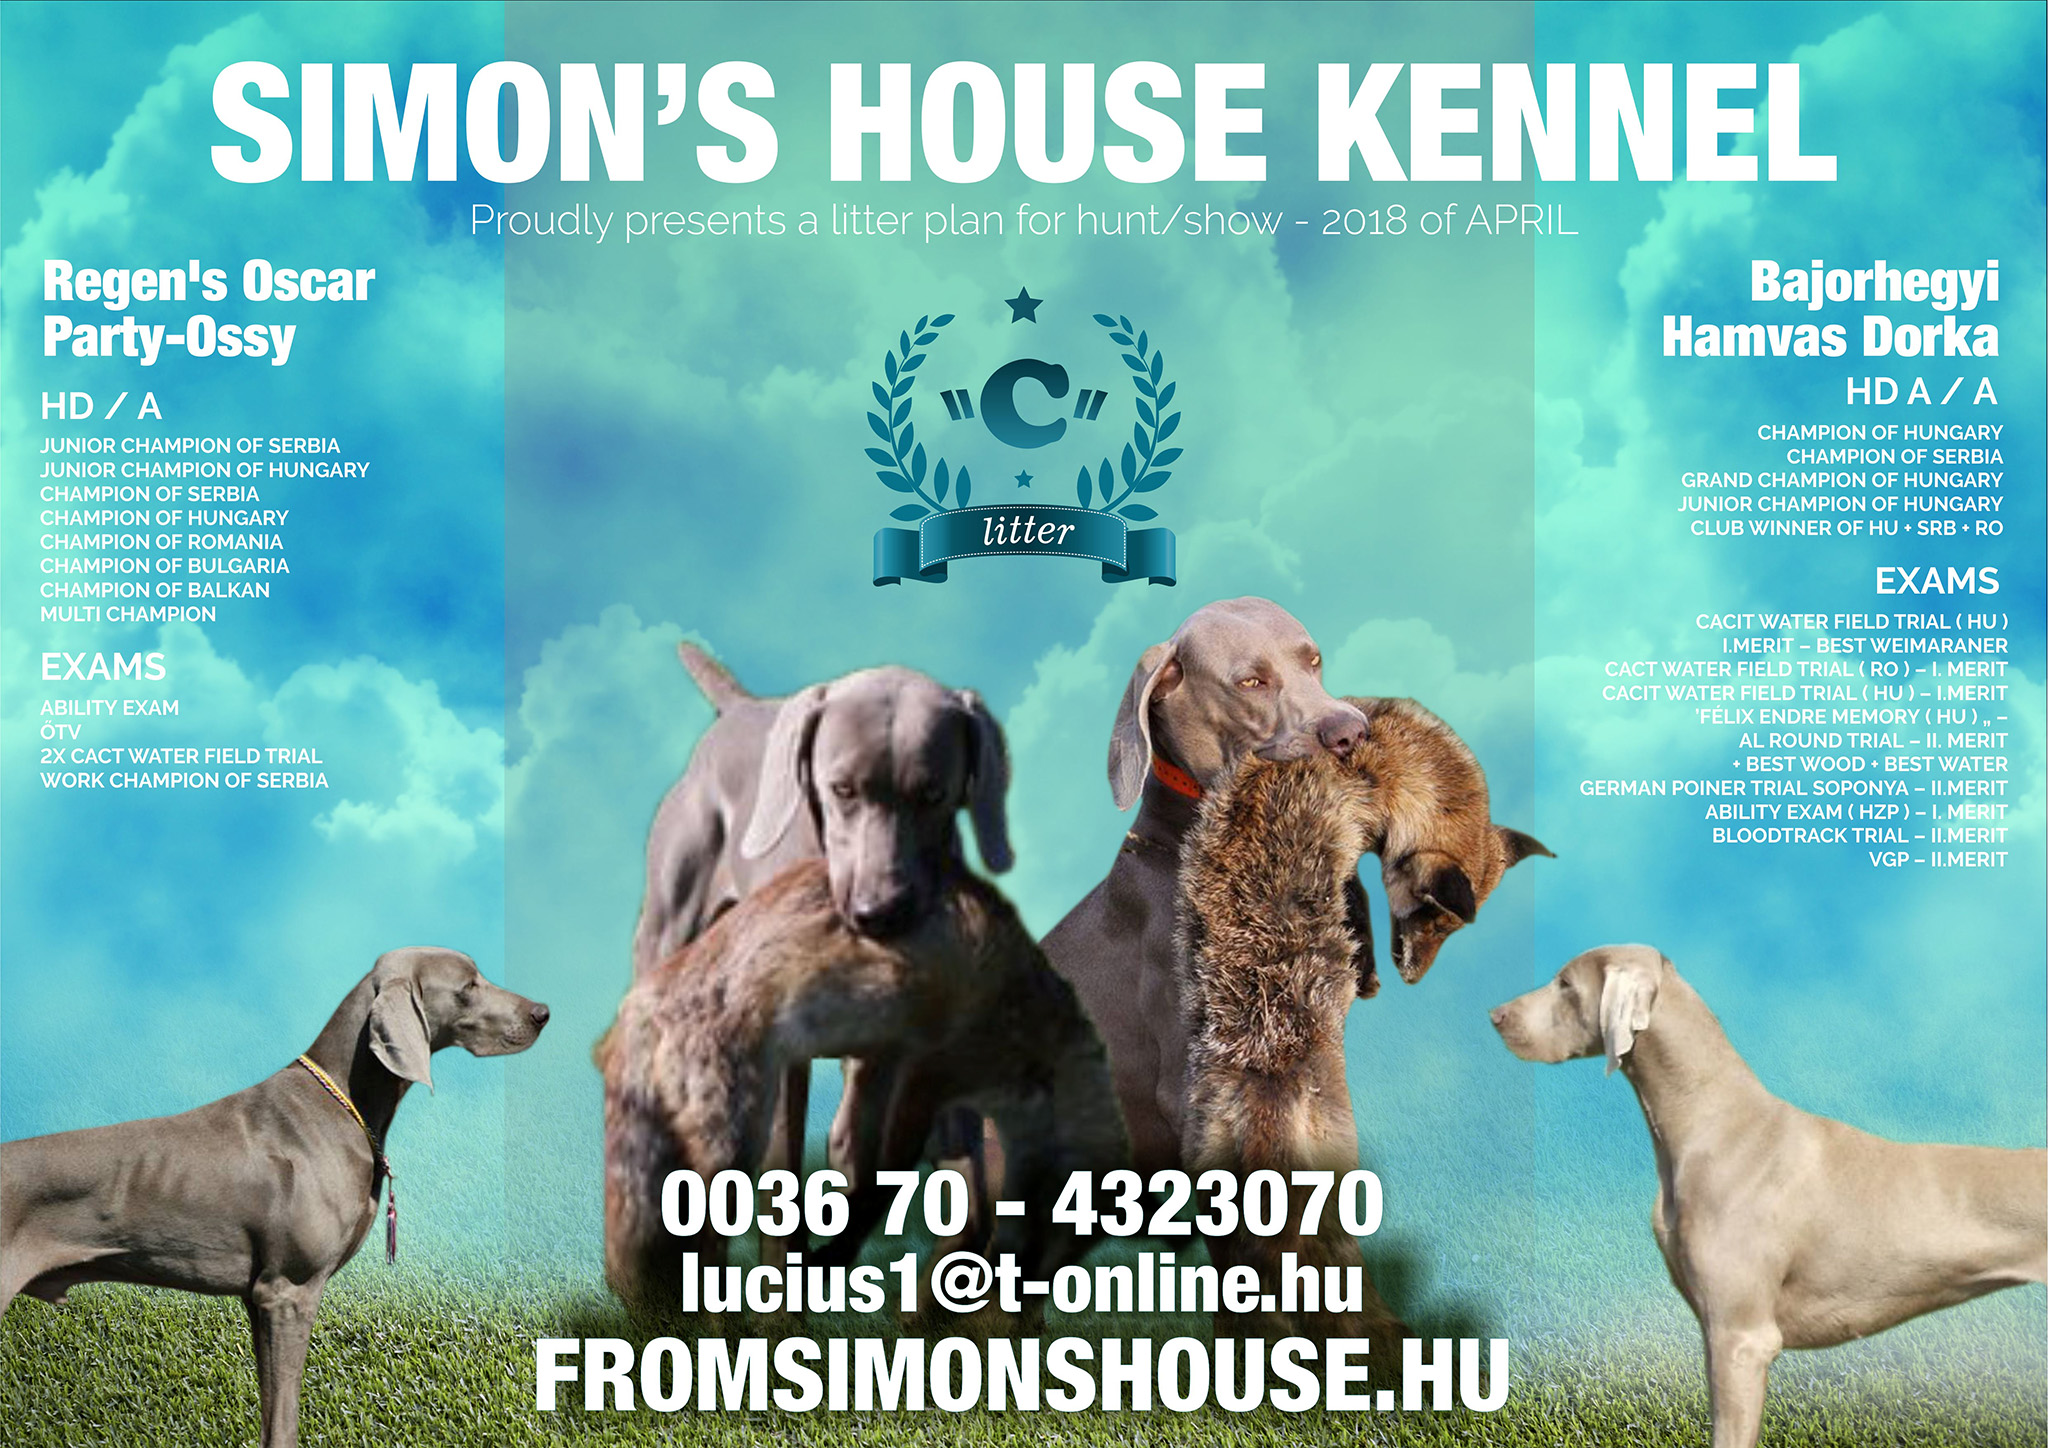 Simon's house kennel: Proudly presents a litter plan for hunt/show - 2018 of APRIL